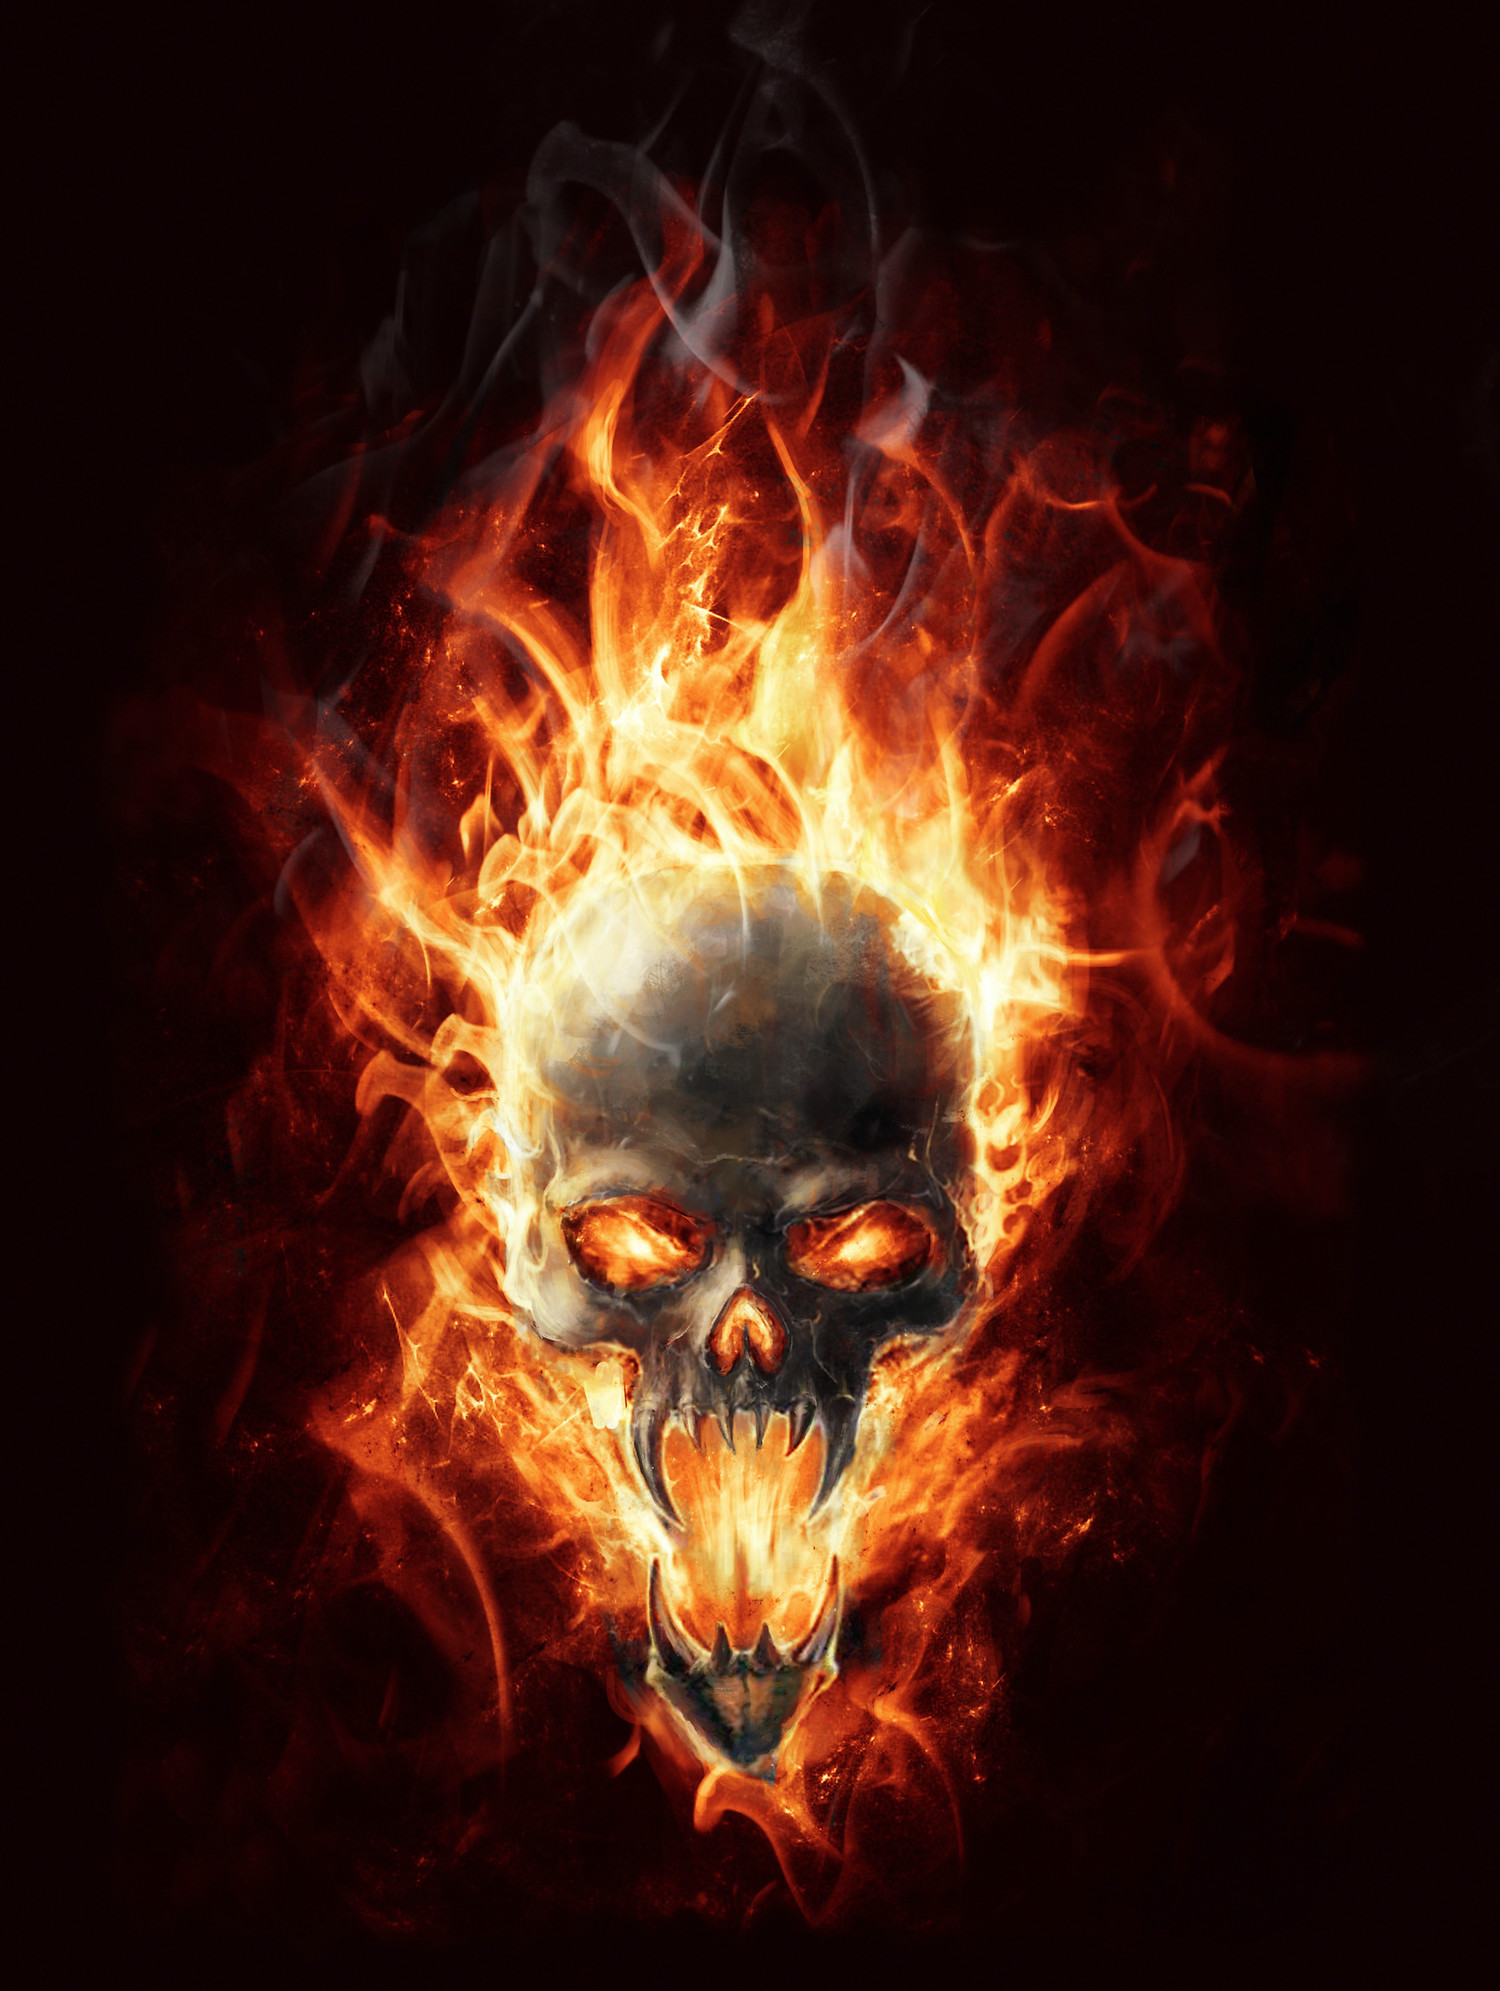 Harley Davidson Skull Wallpaper Hd Posted By Zoey Sellers